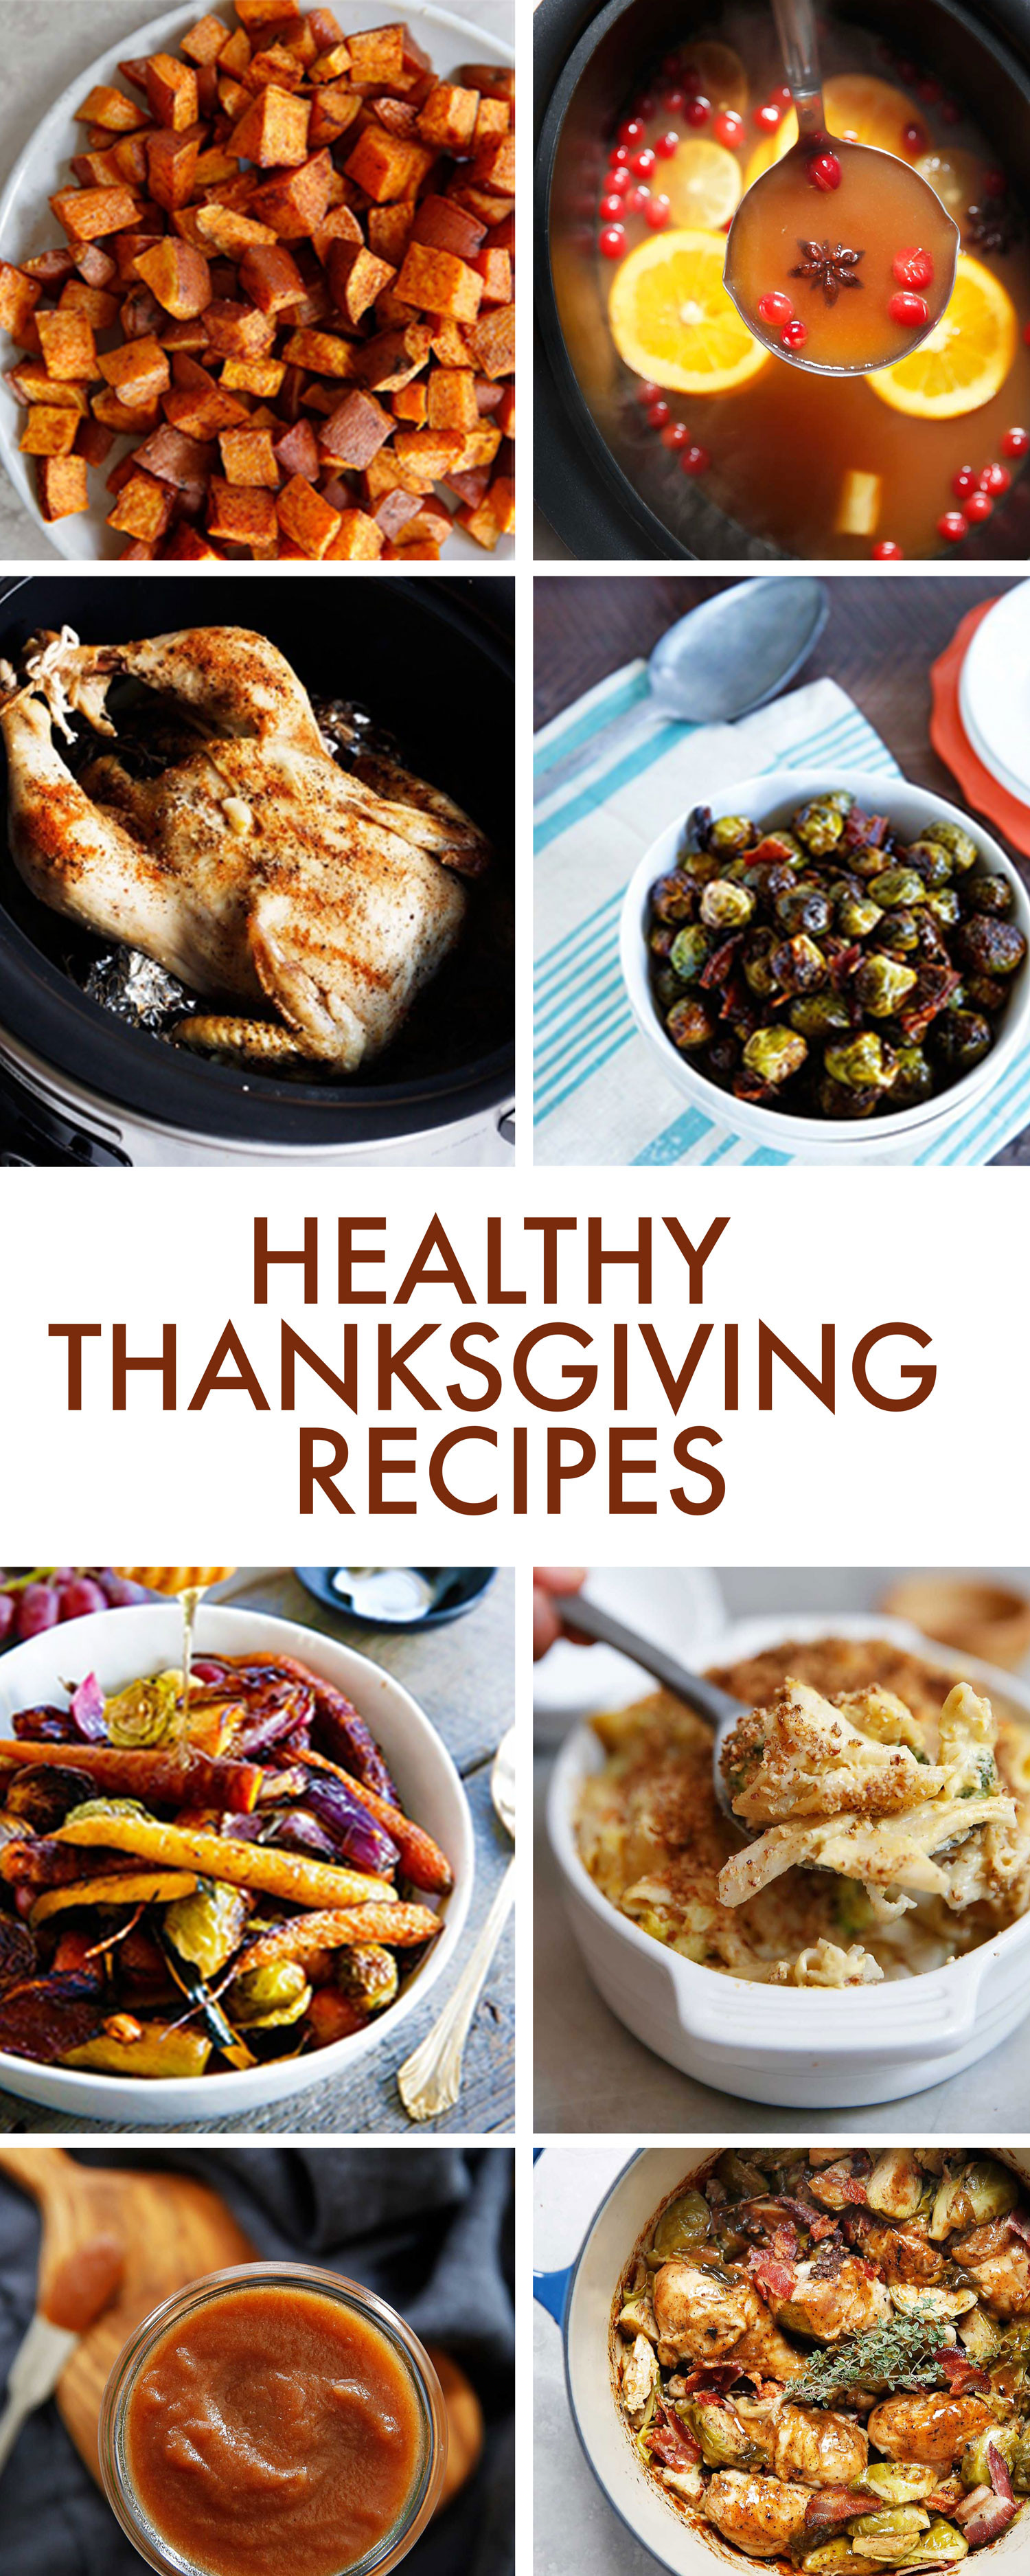 Healthy Thanksgiving Recipes  thanksgiving recipes Archives Lexi s Clean Kitchen